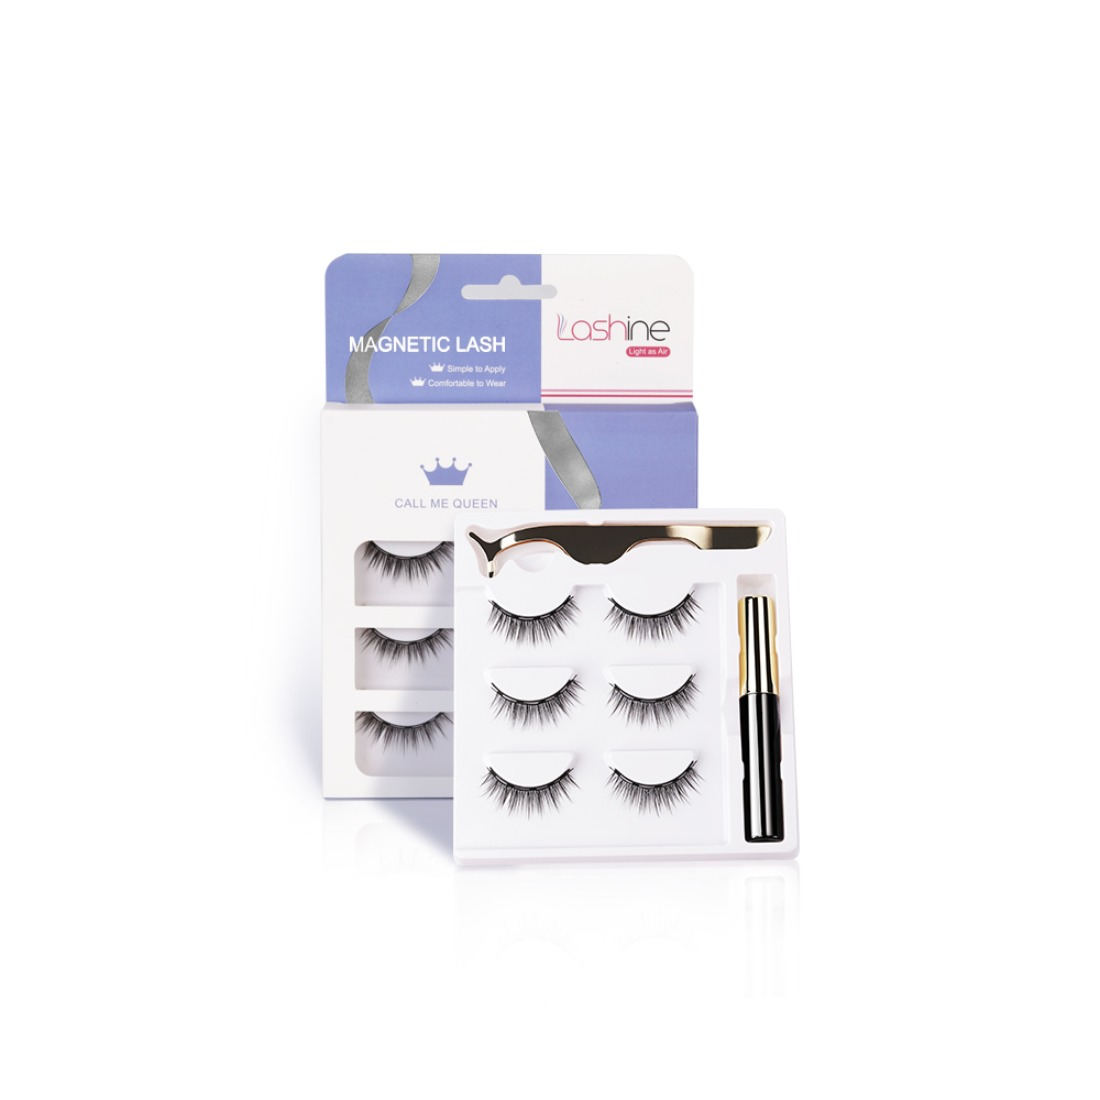 Different 3 pairs of Magnetic Lashes